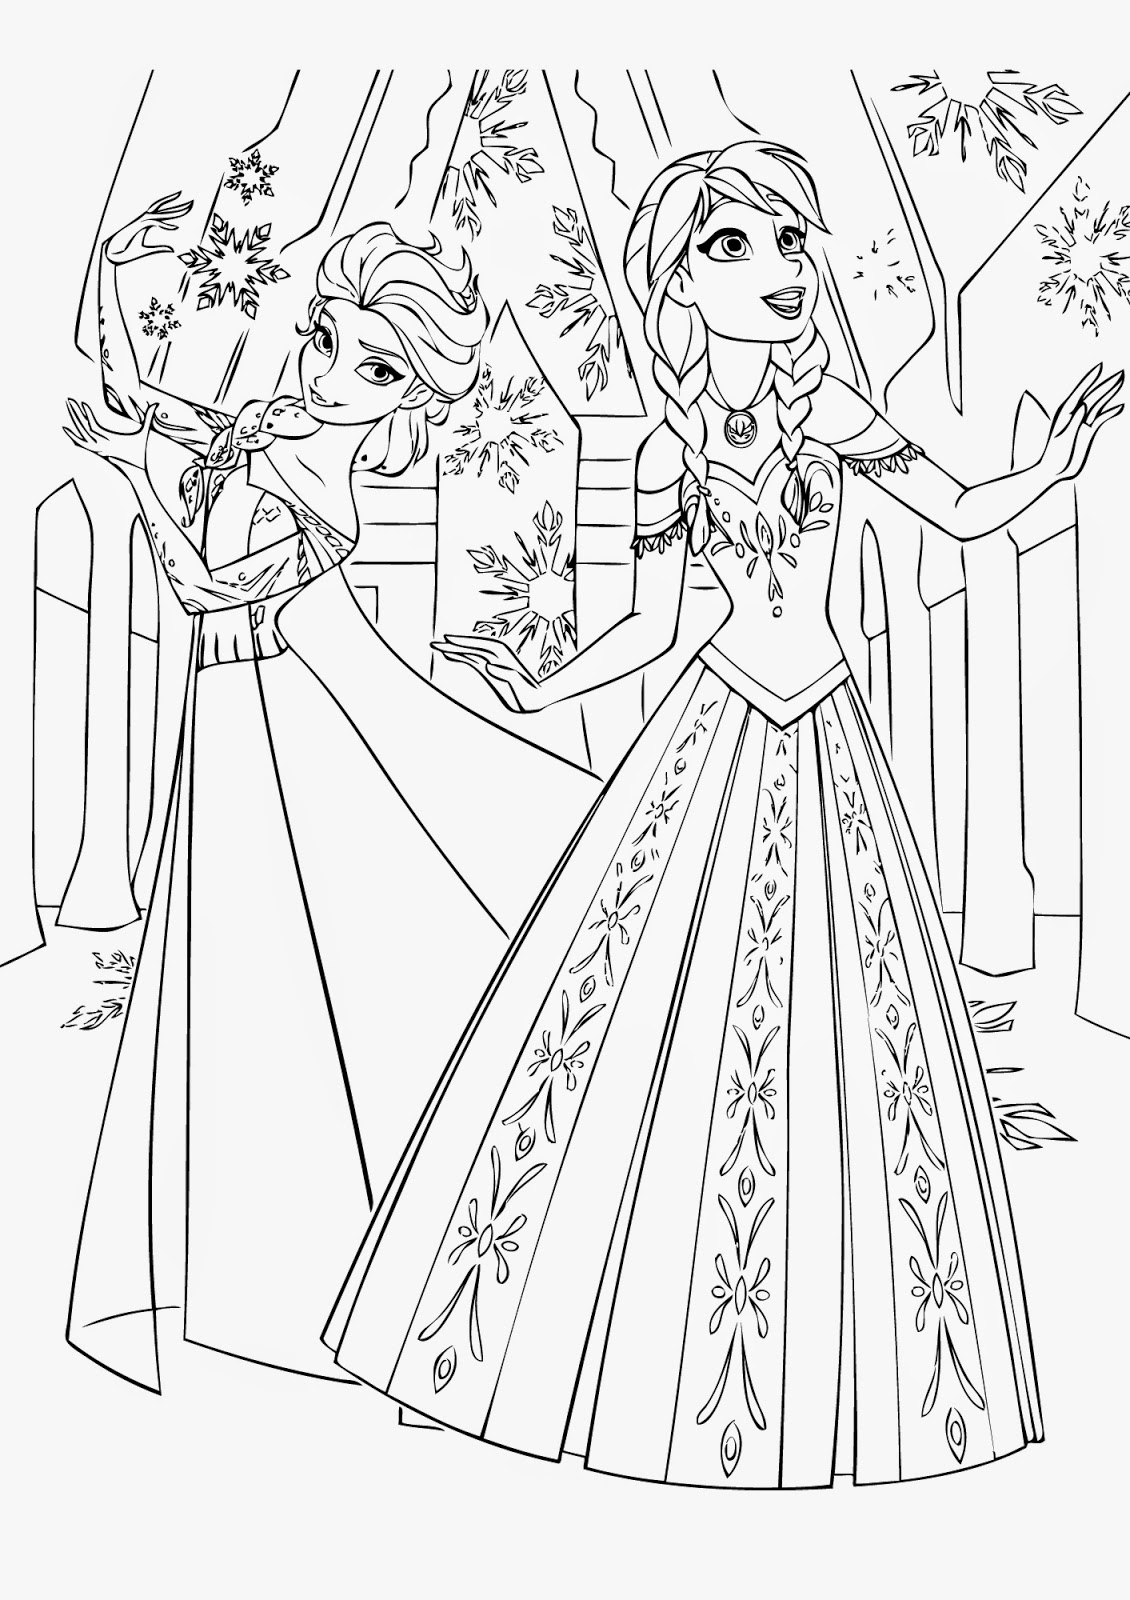 pictures of frozen to color find 16 awesome frozen coloring pages to print instant frozen to color of pictures